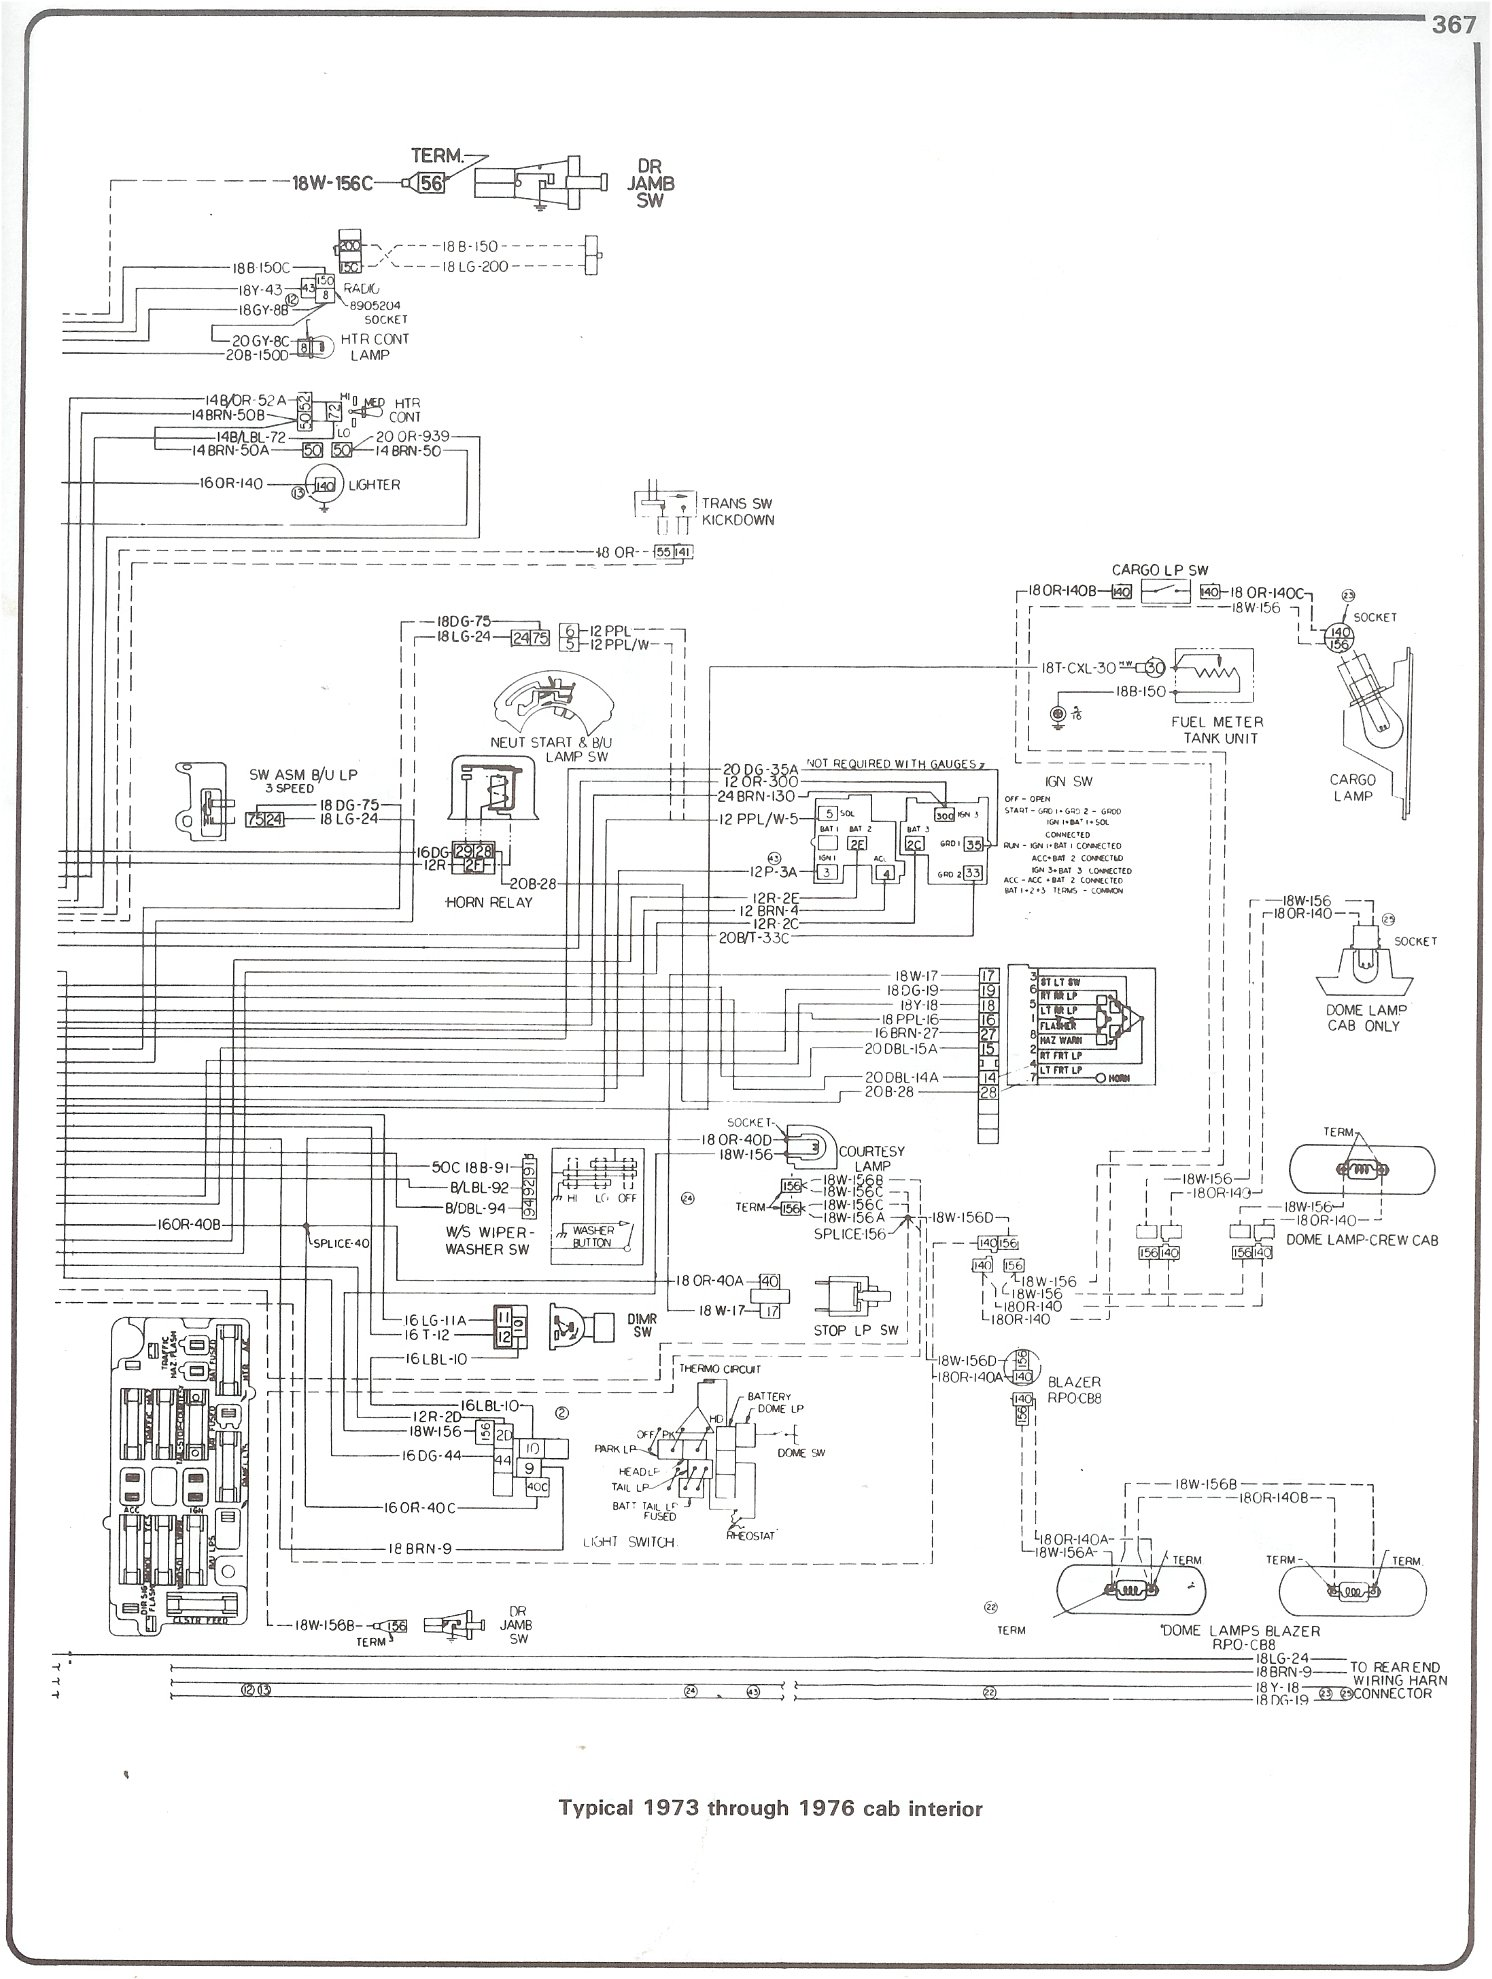 Complete 73 87 Wiring Diagrams 1987 Ford Mustang Stereo Harness Color Code Schematic 76 Cab Interior